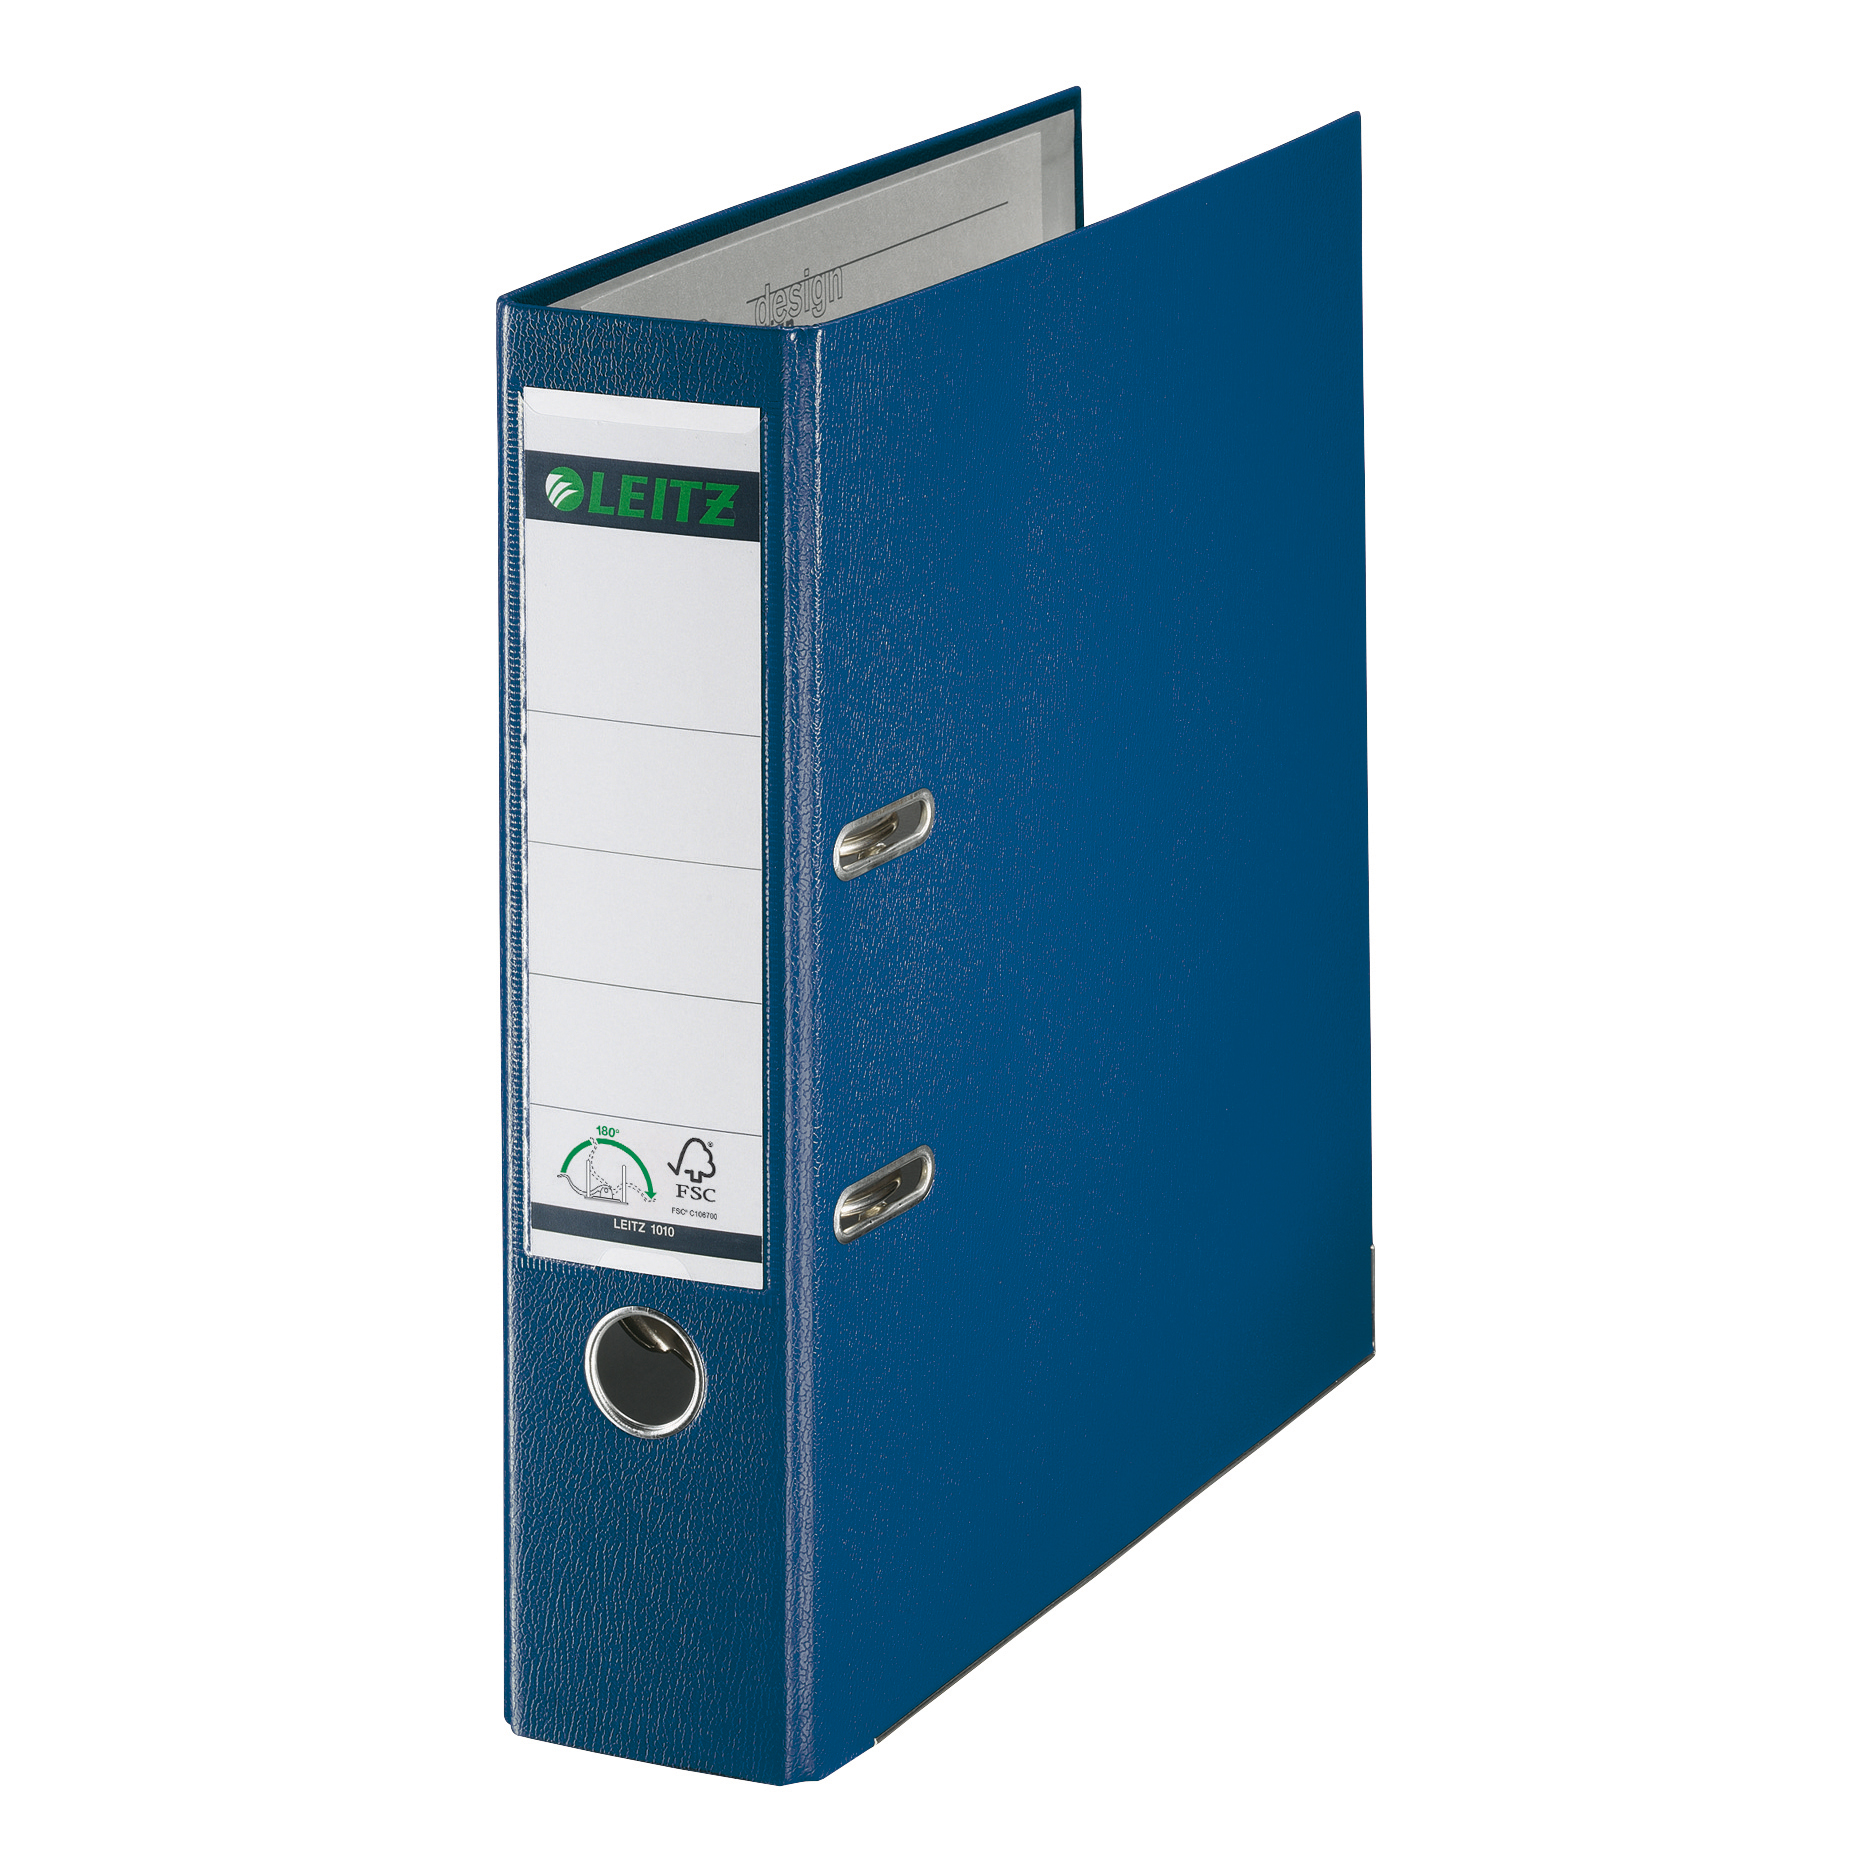 Leitz Lever Arch File Plastic 80mm Spine Foolscap Blue Ref 11101135 [Pack 10]